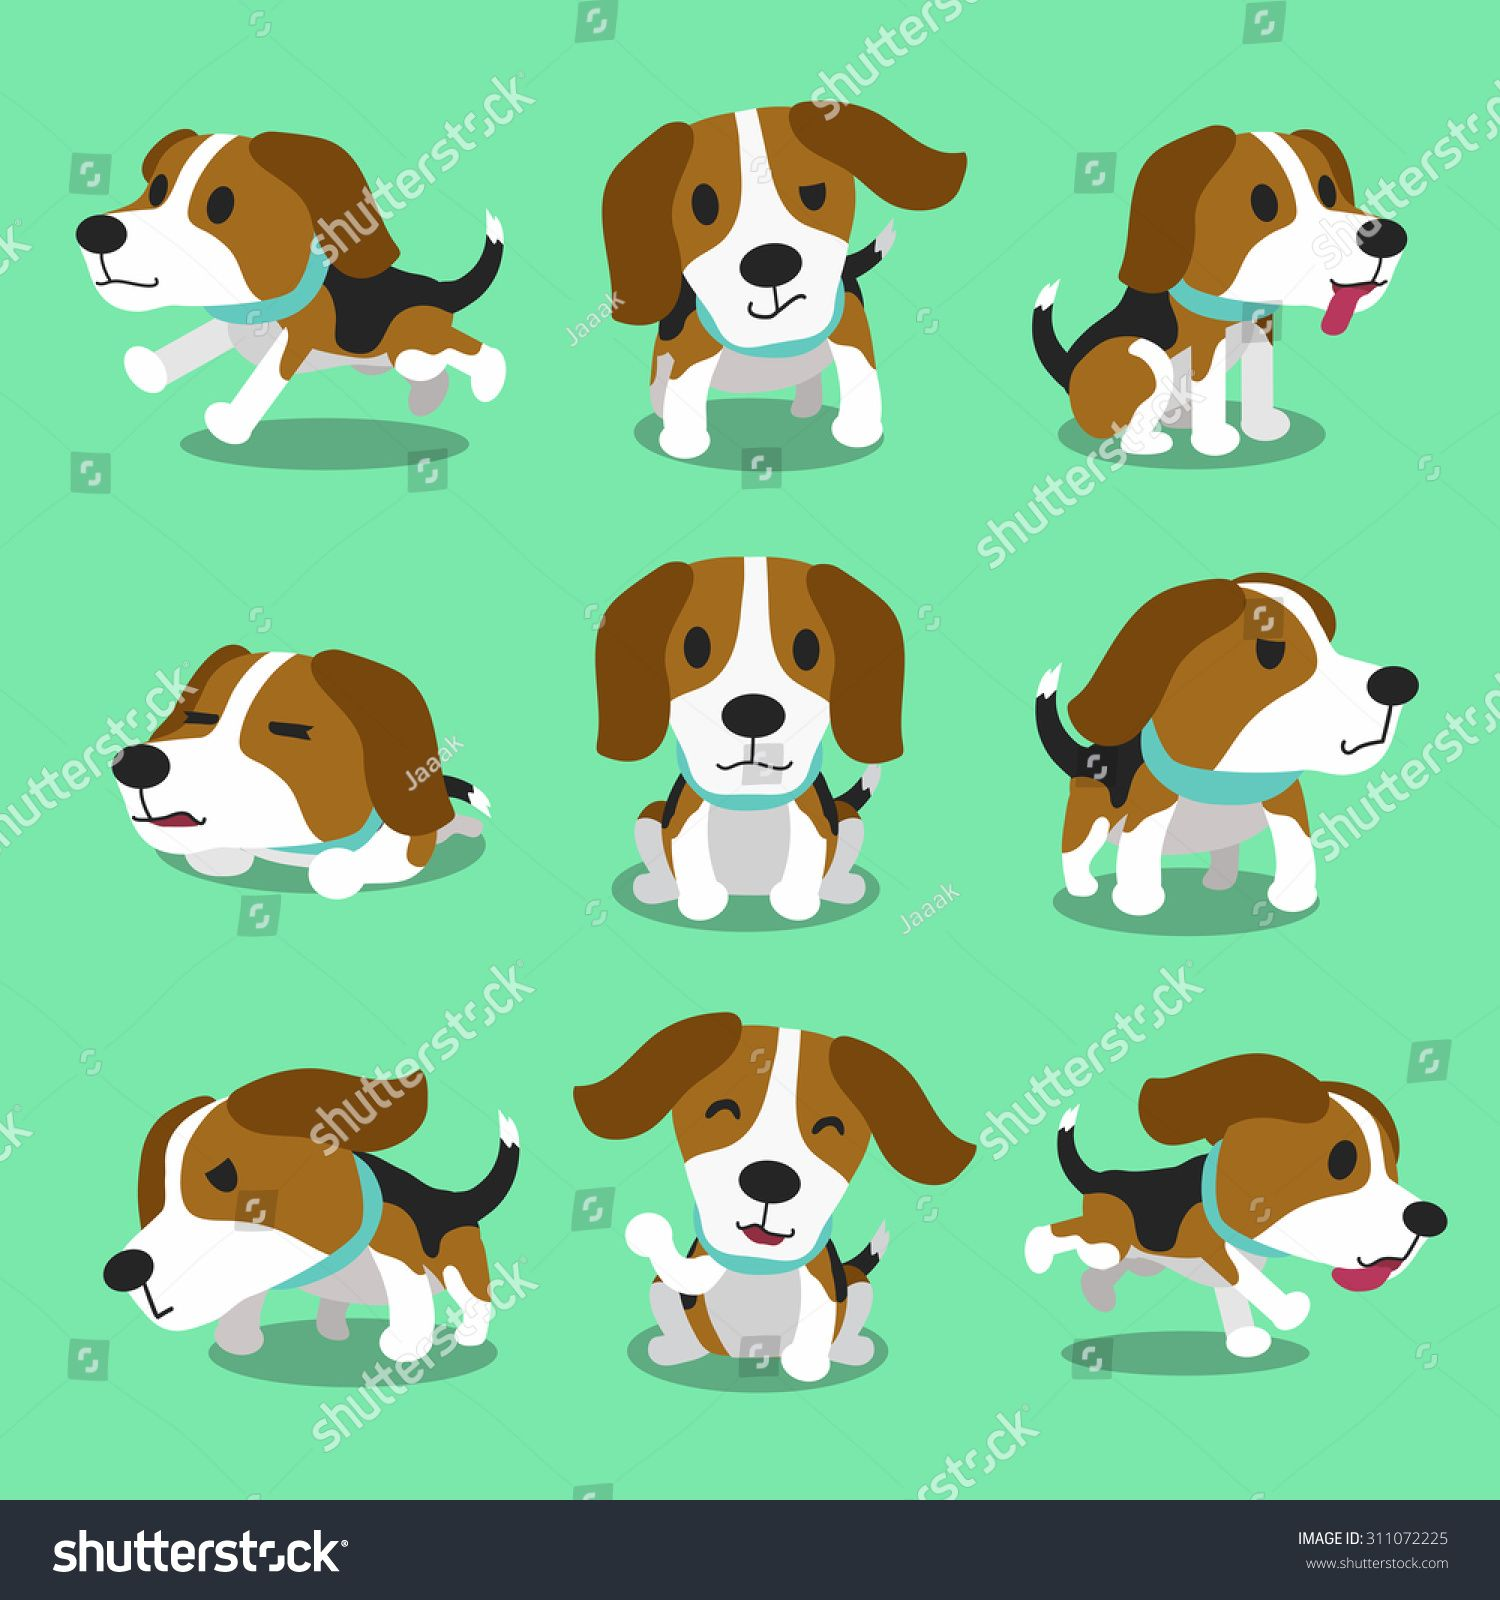 Cartoon Character Beagle Dog Poses Shenki Chihuahua Bigl Shenki